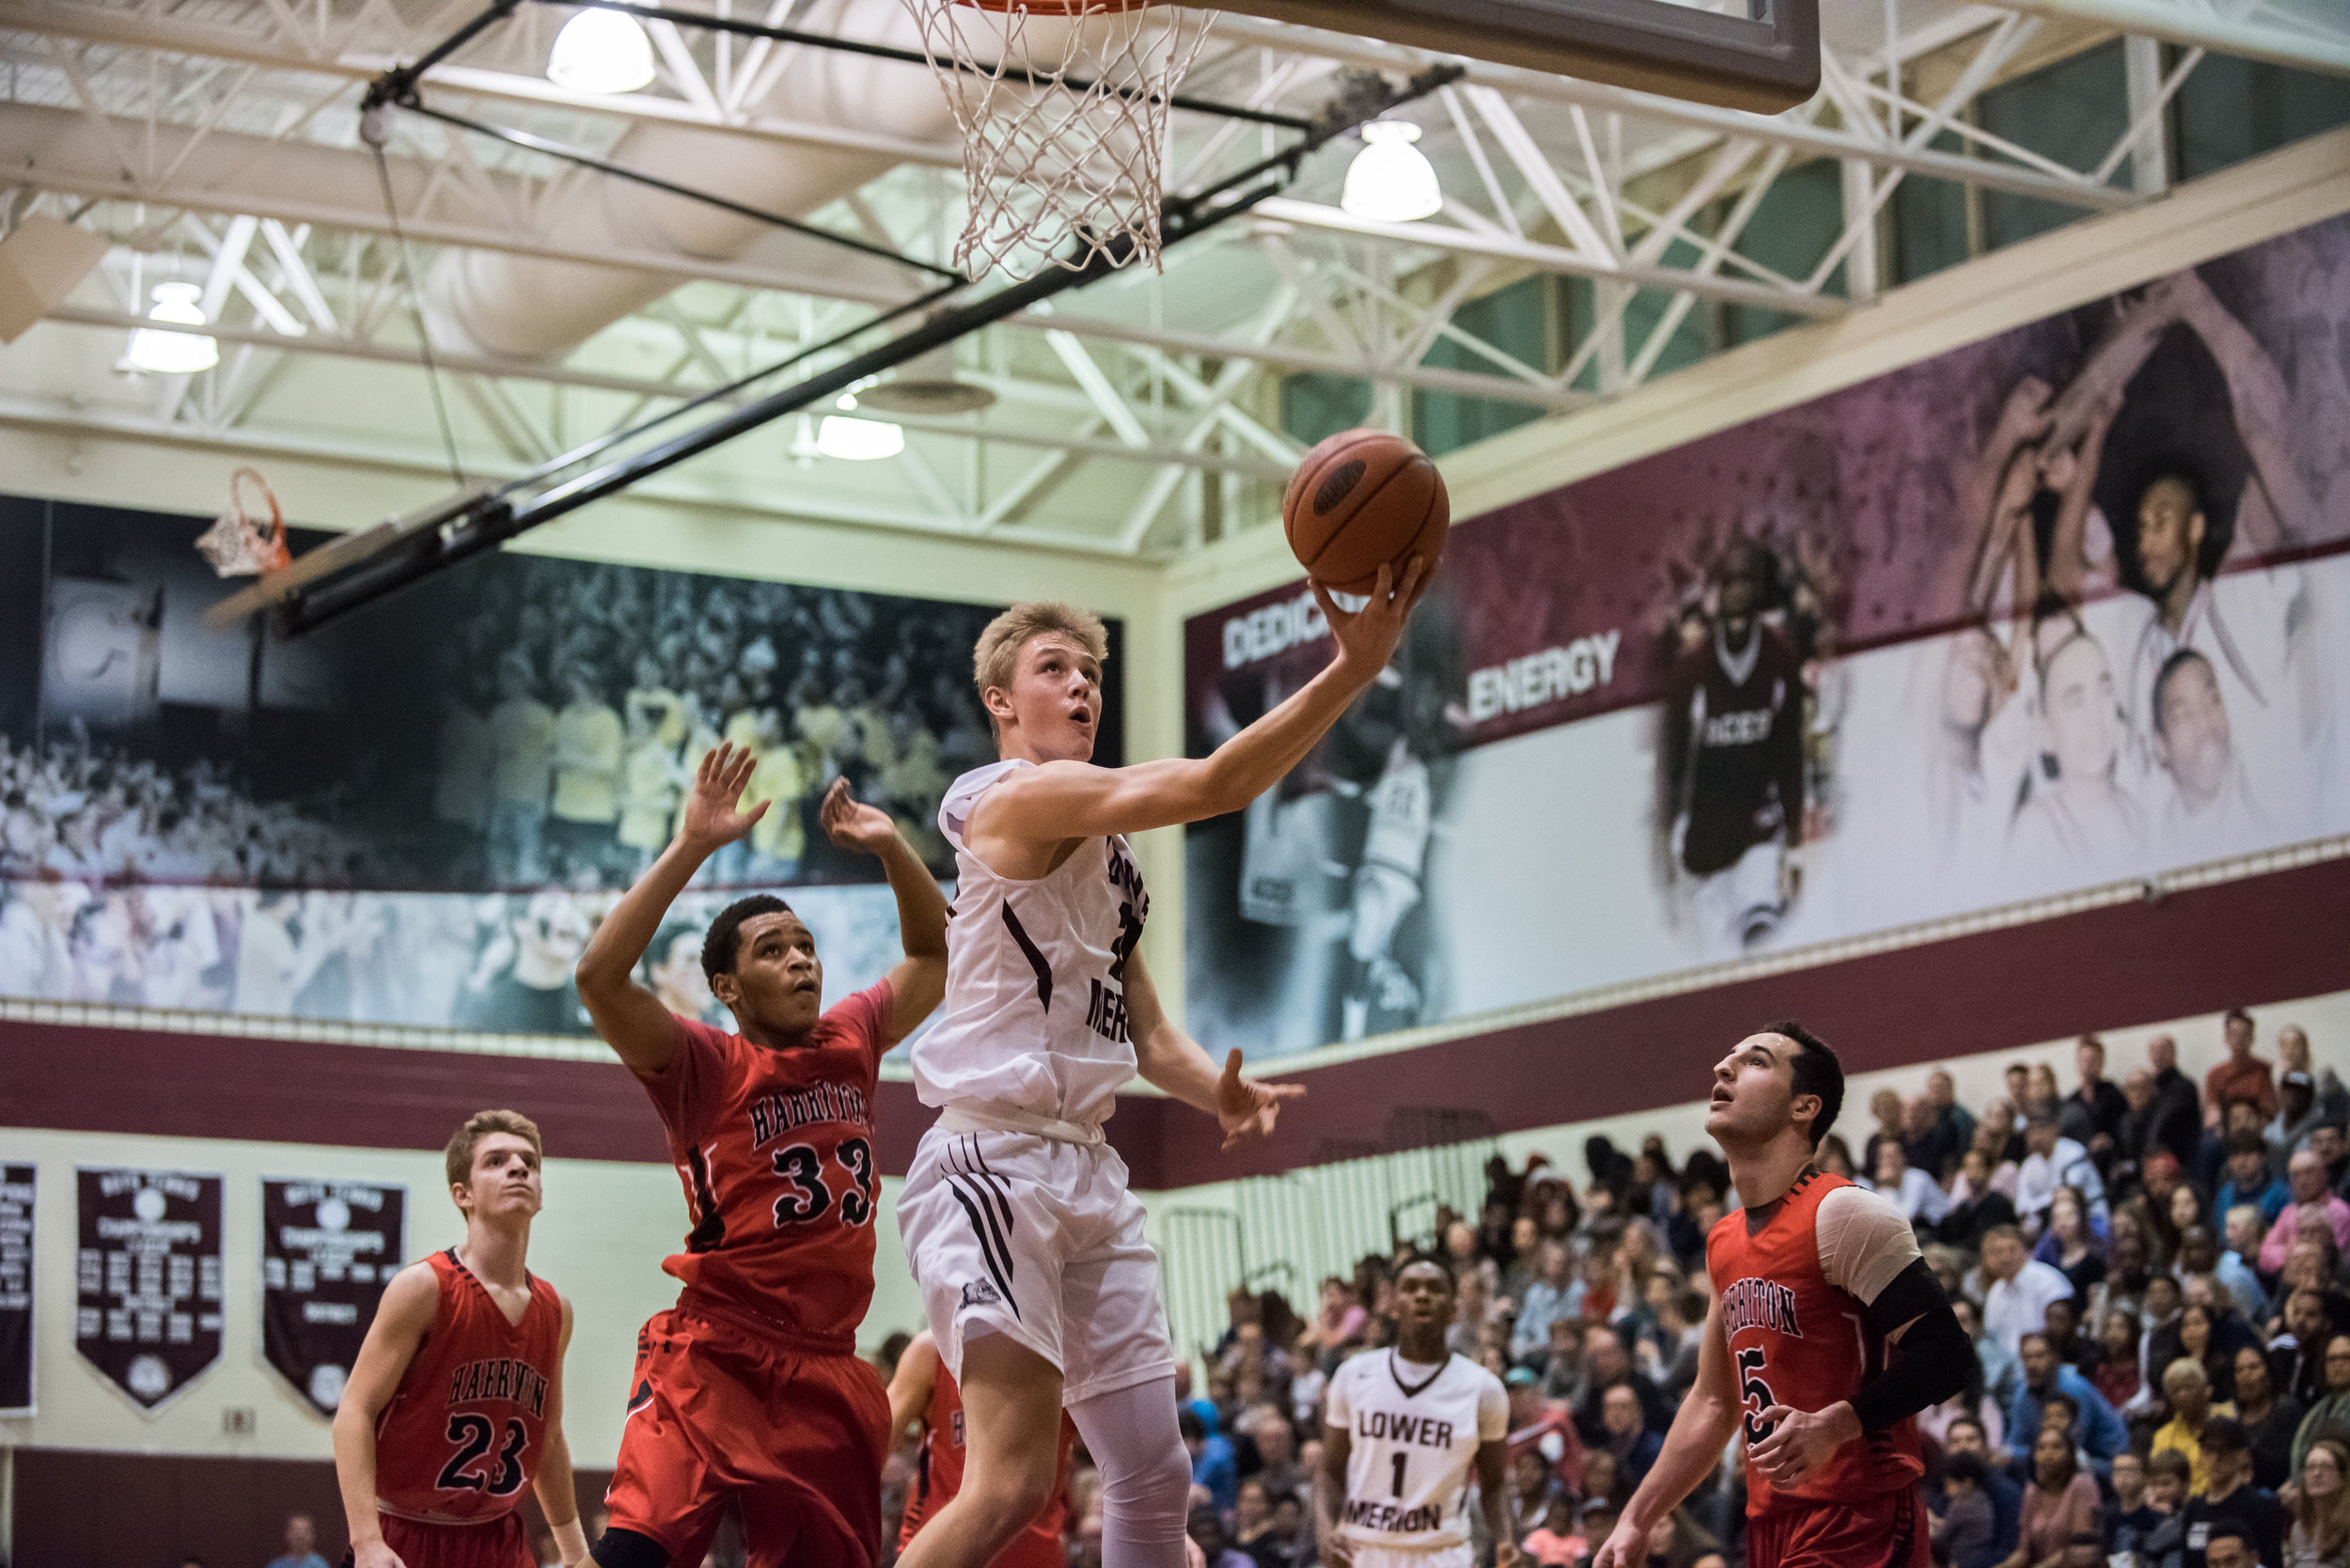 Lower_Merion_Basketball-184.jpg